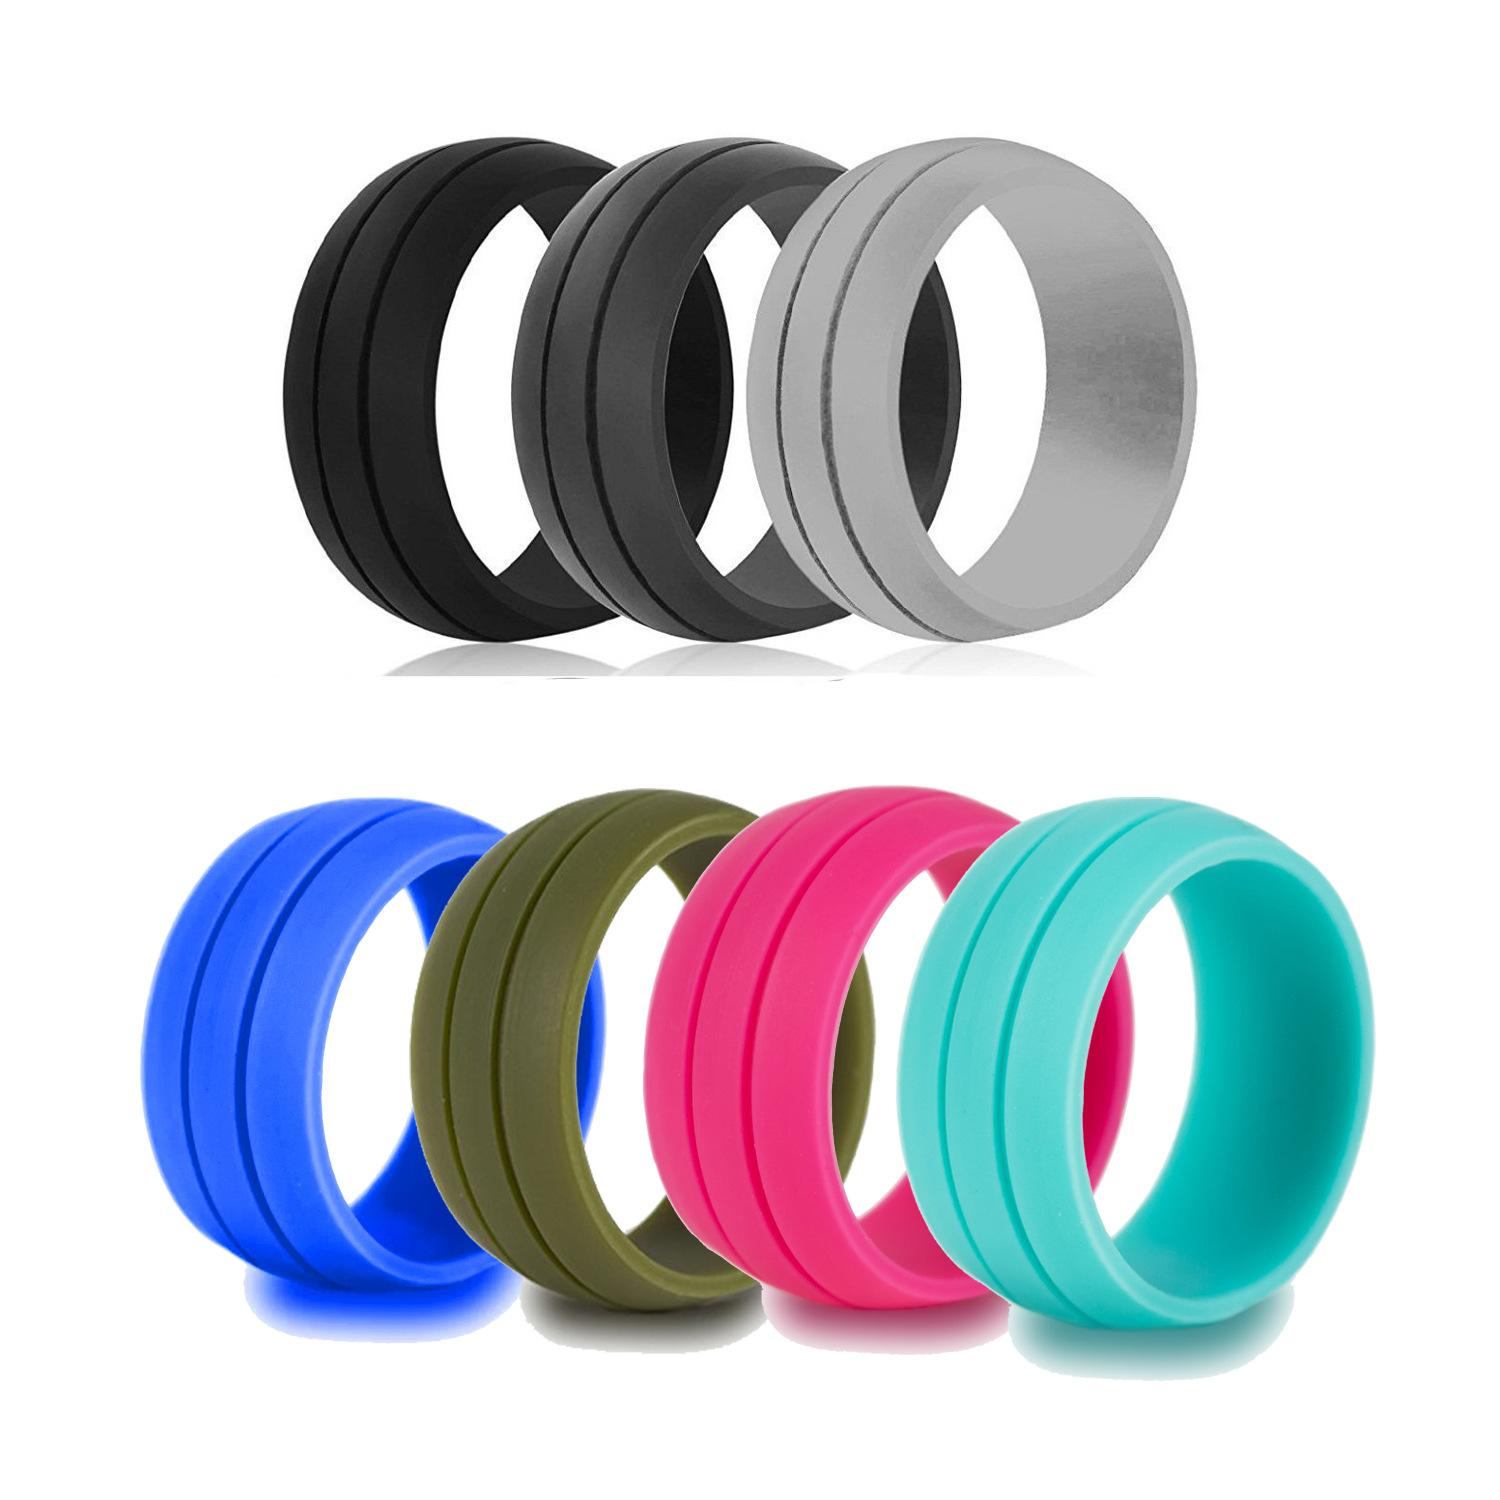 New 8.5MM Width Fashion Wedding Silicone Band Rings women Sports Personalized Punk Finger Rings For Men Engagement Party Jewelry Gift